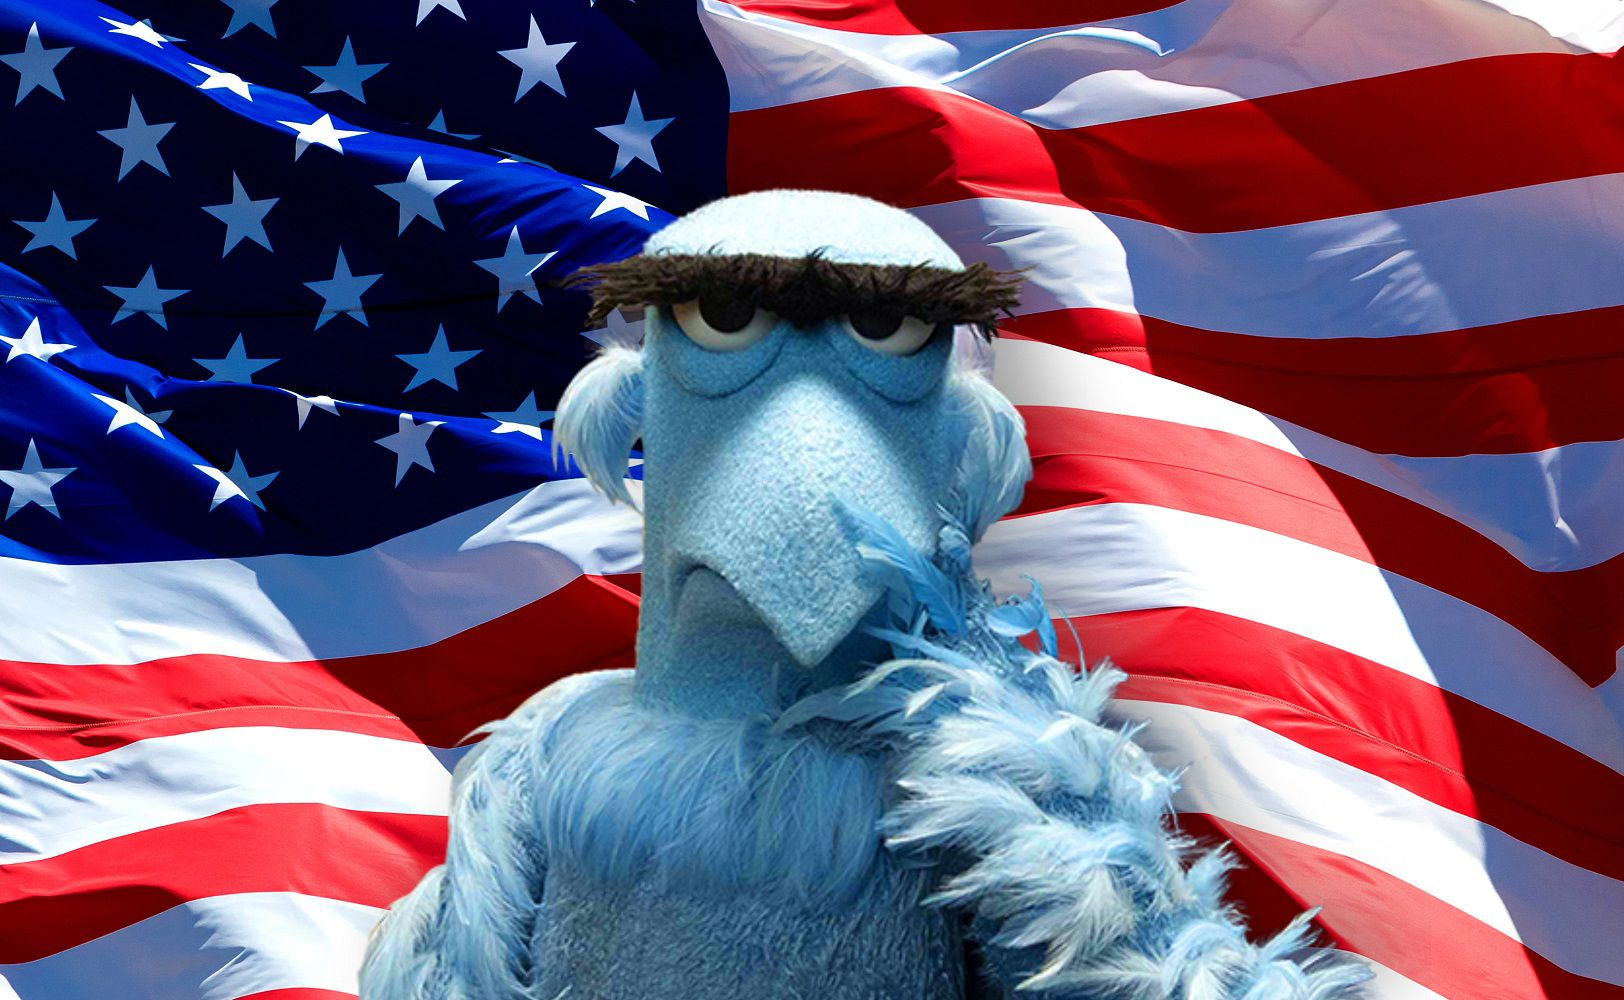 Muppets - Sam the eagle